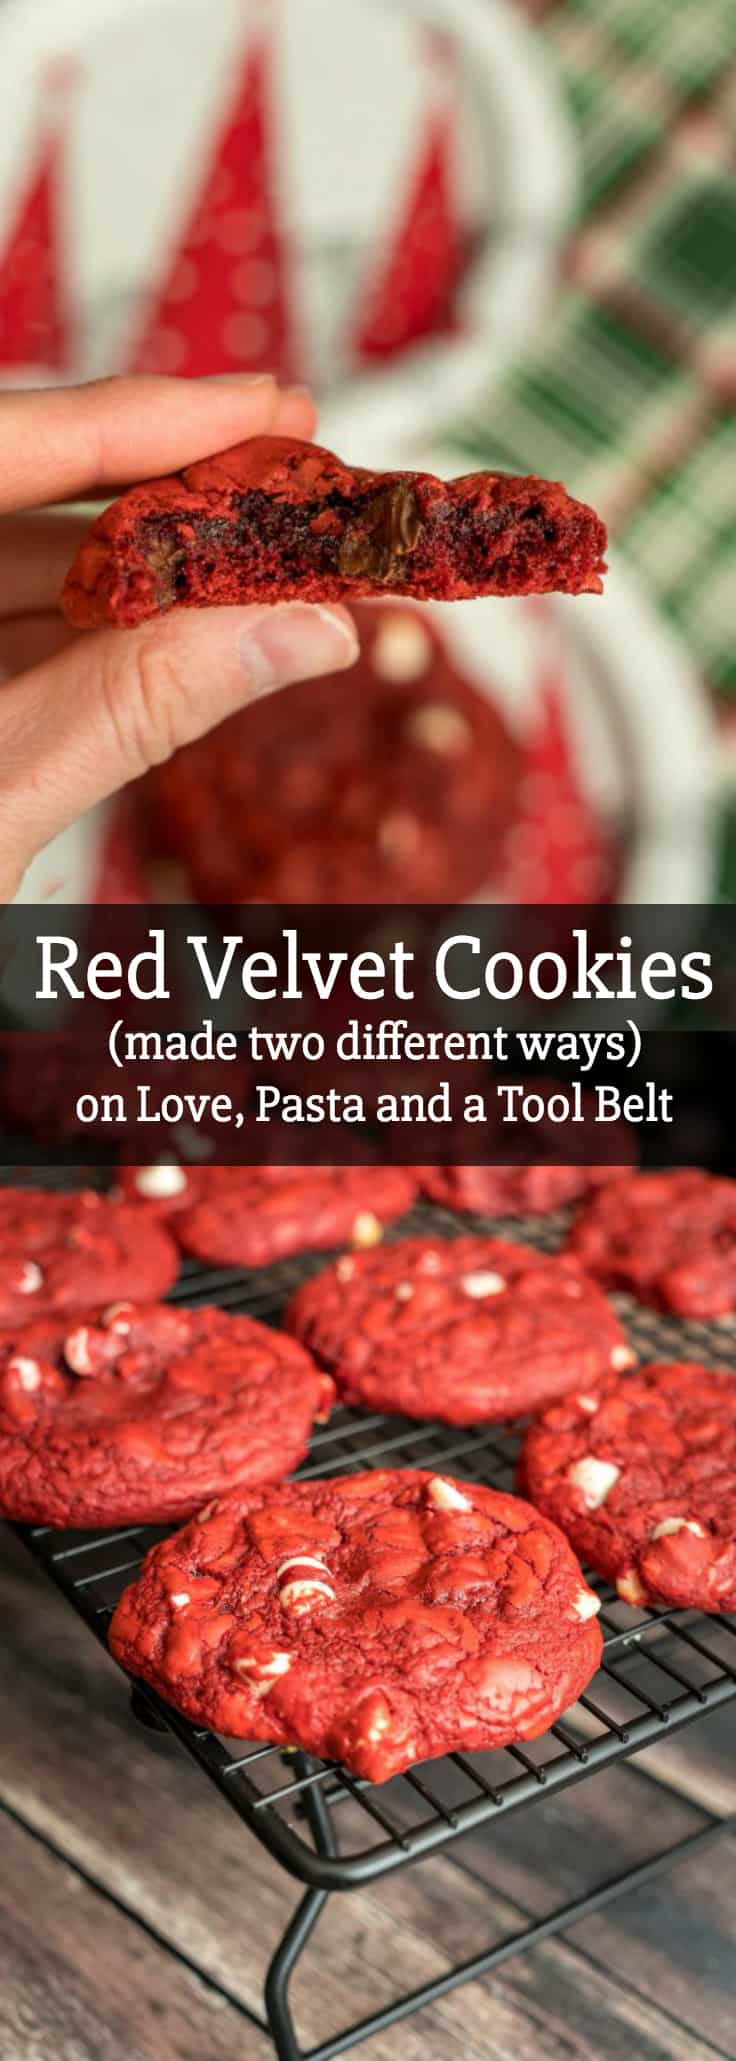 Different ways to make love - Prepare For The Holidays With This Delicious Recipe For Red Velvet Cookies That You Can Make